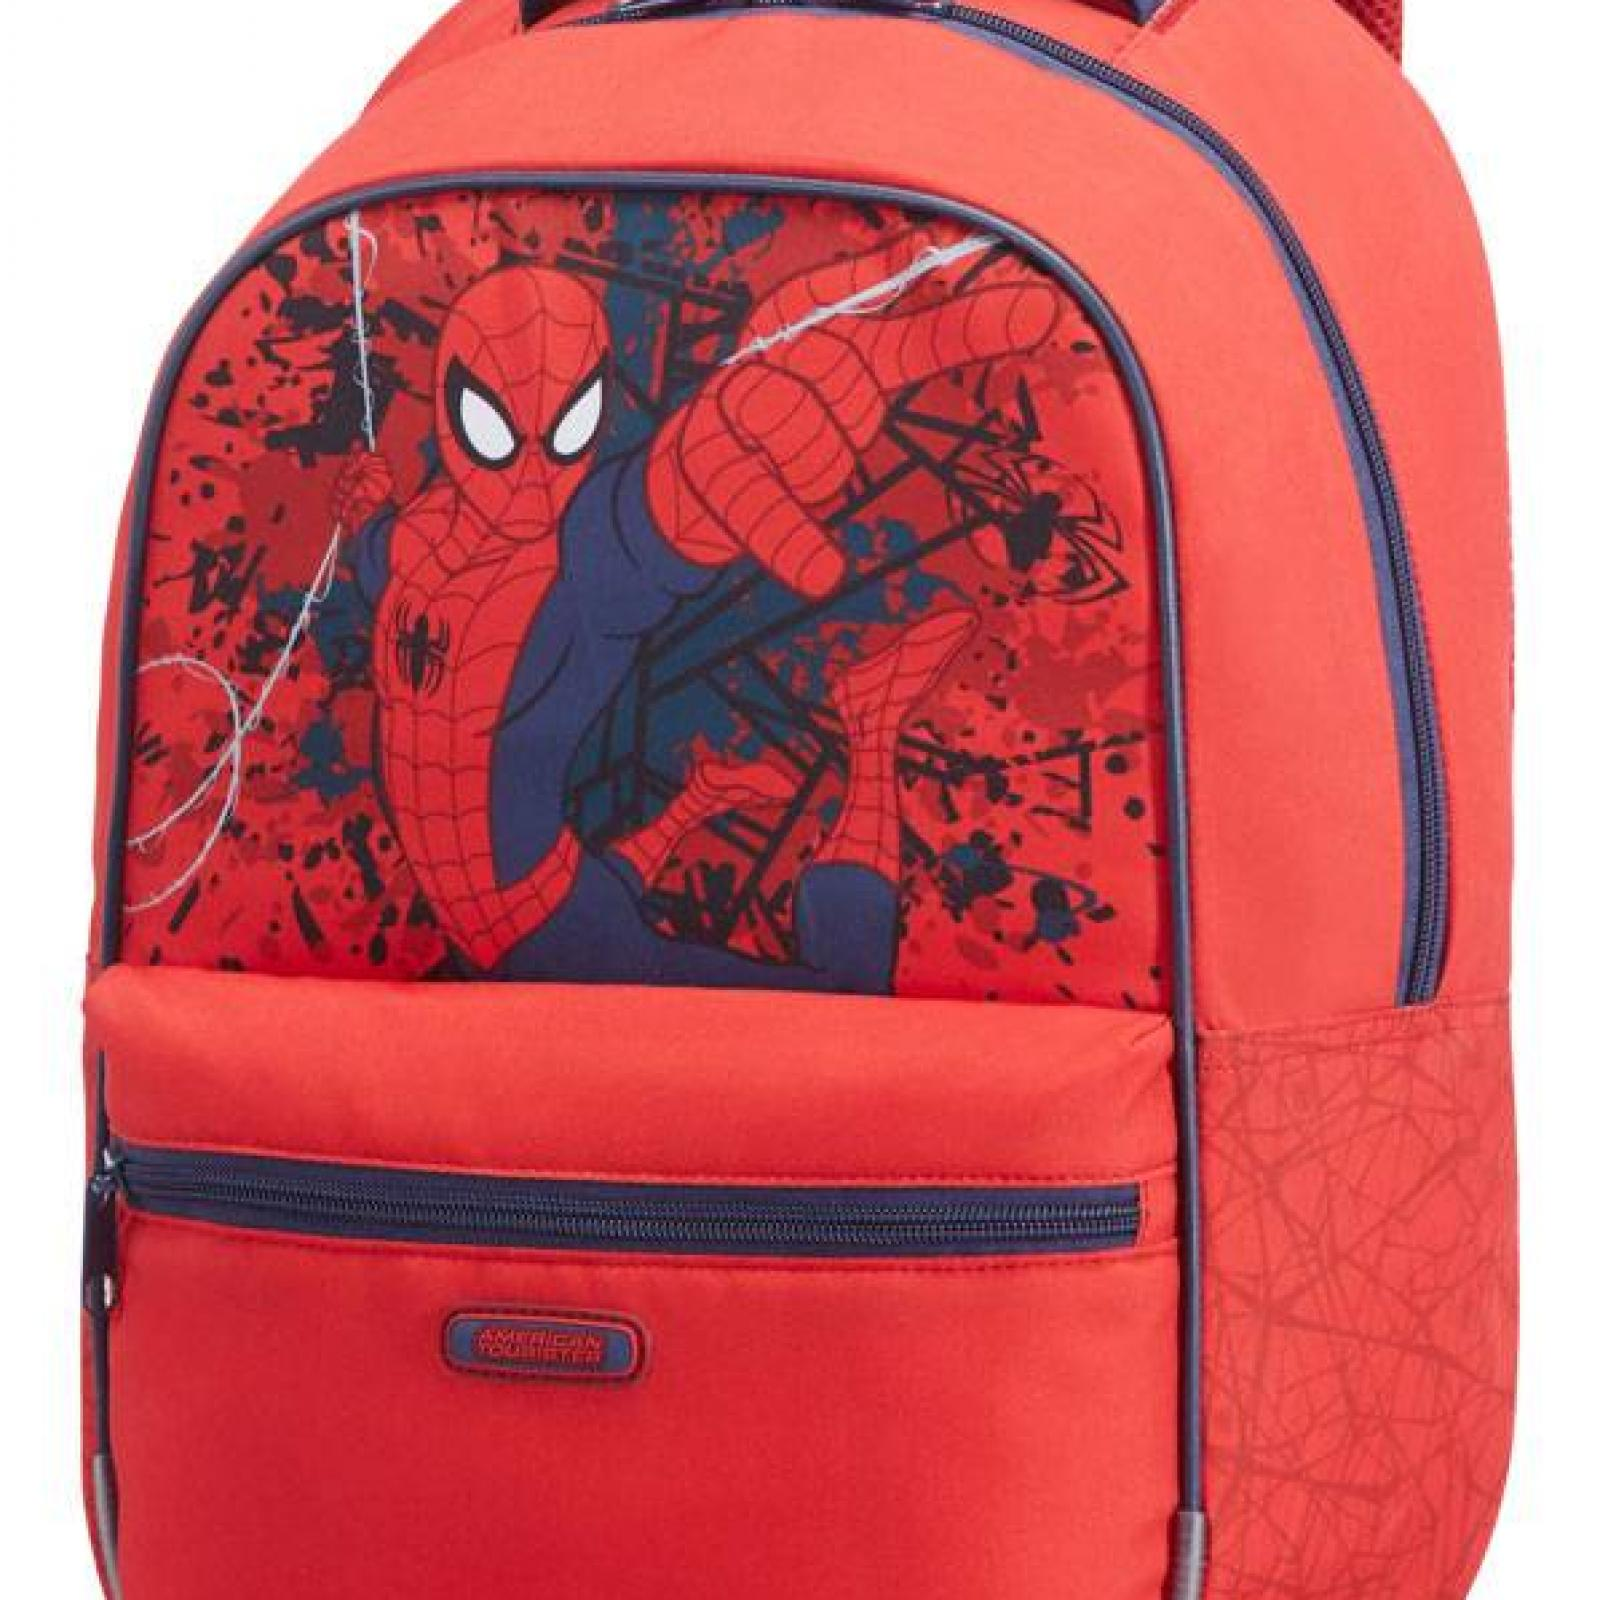 DISNEY LEGENDS/BACKPACK